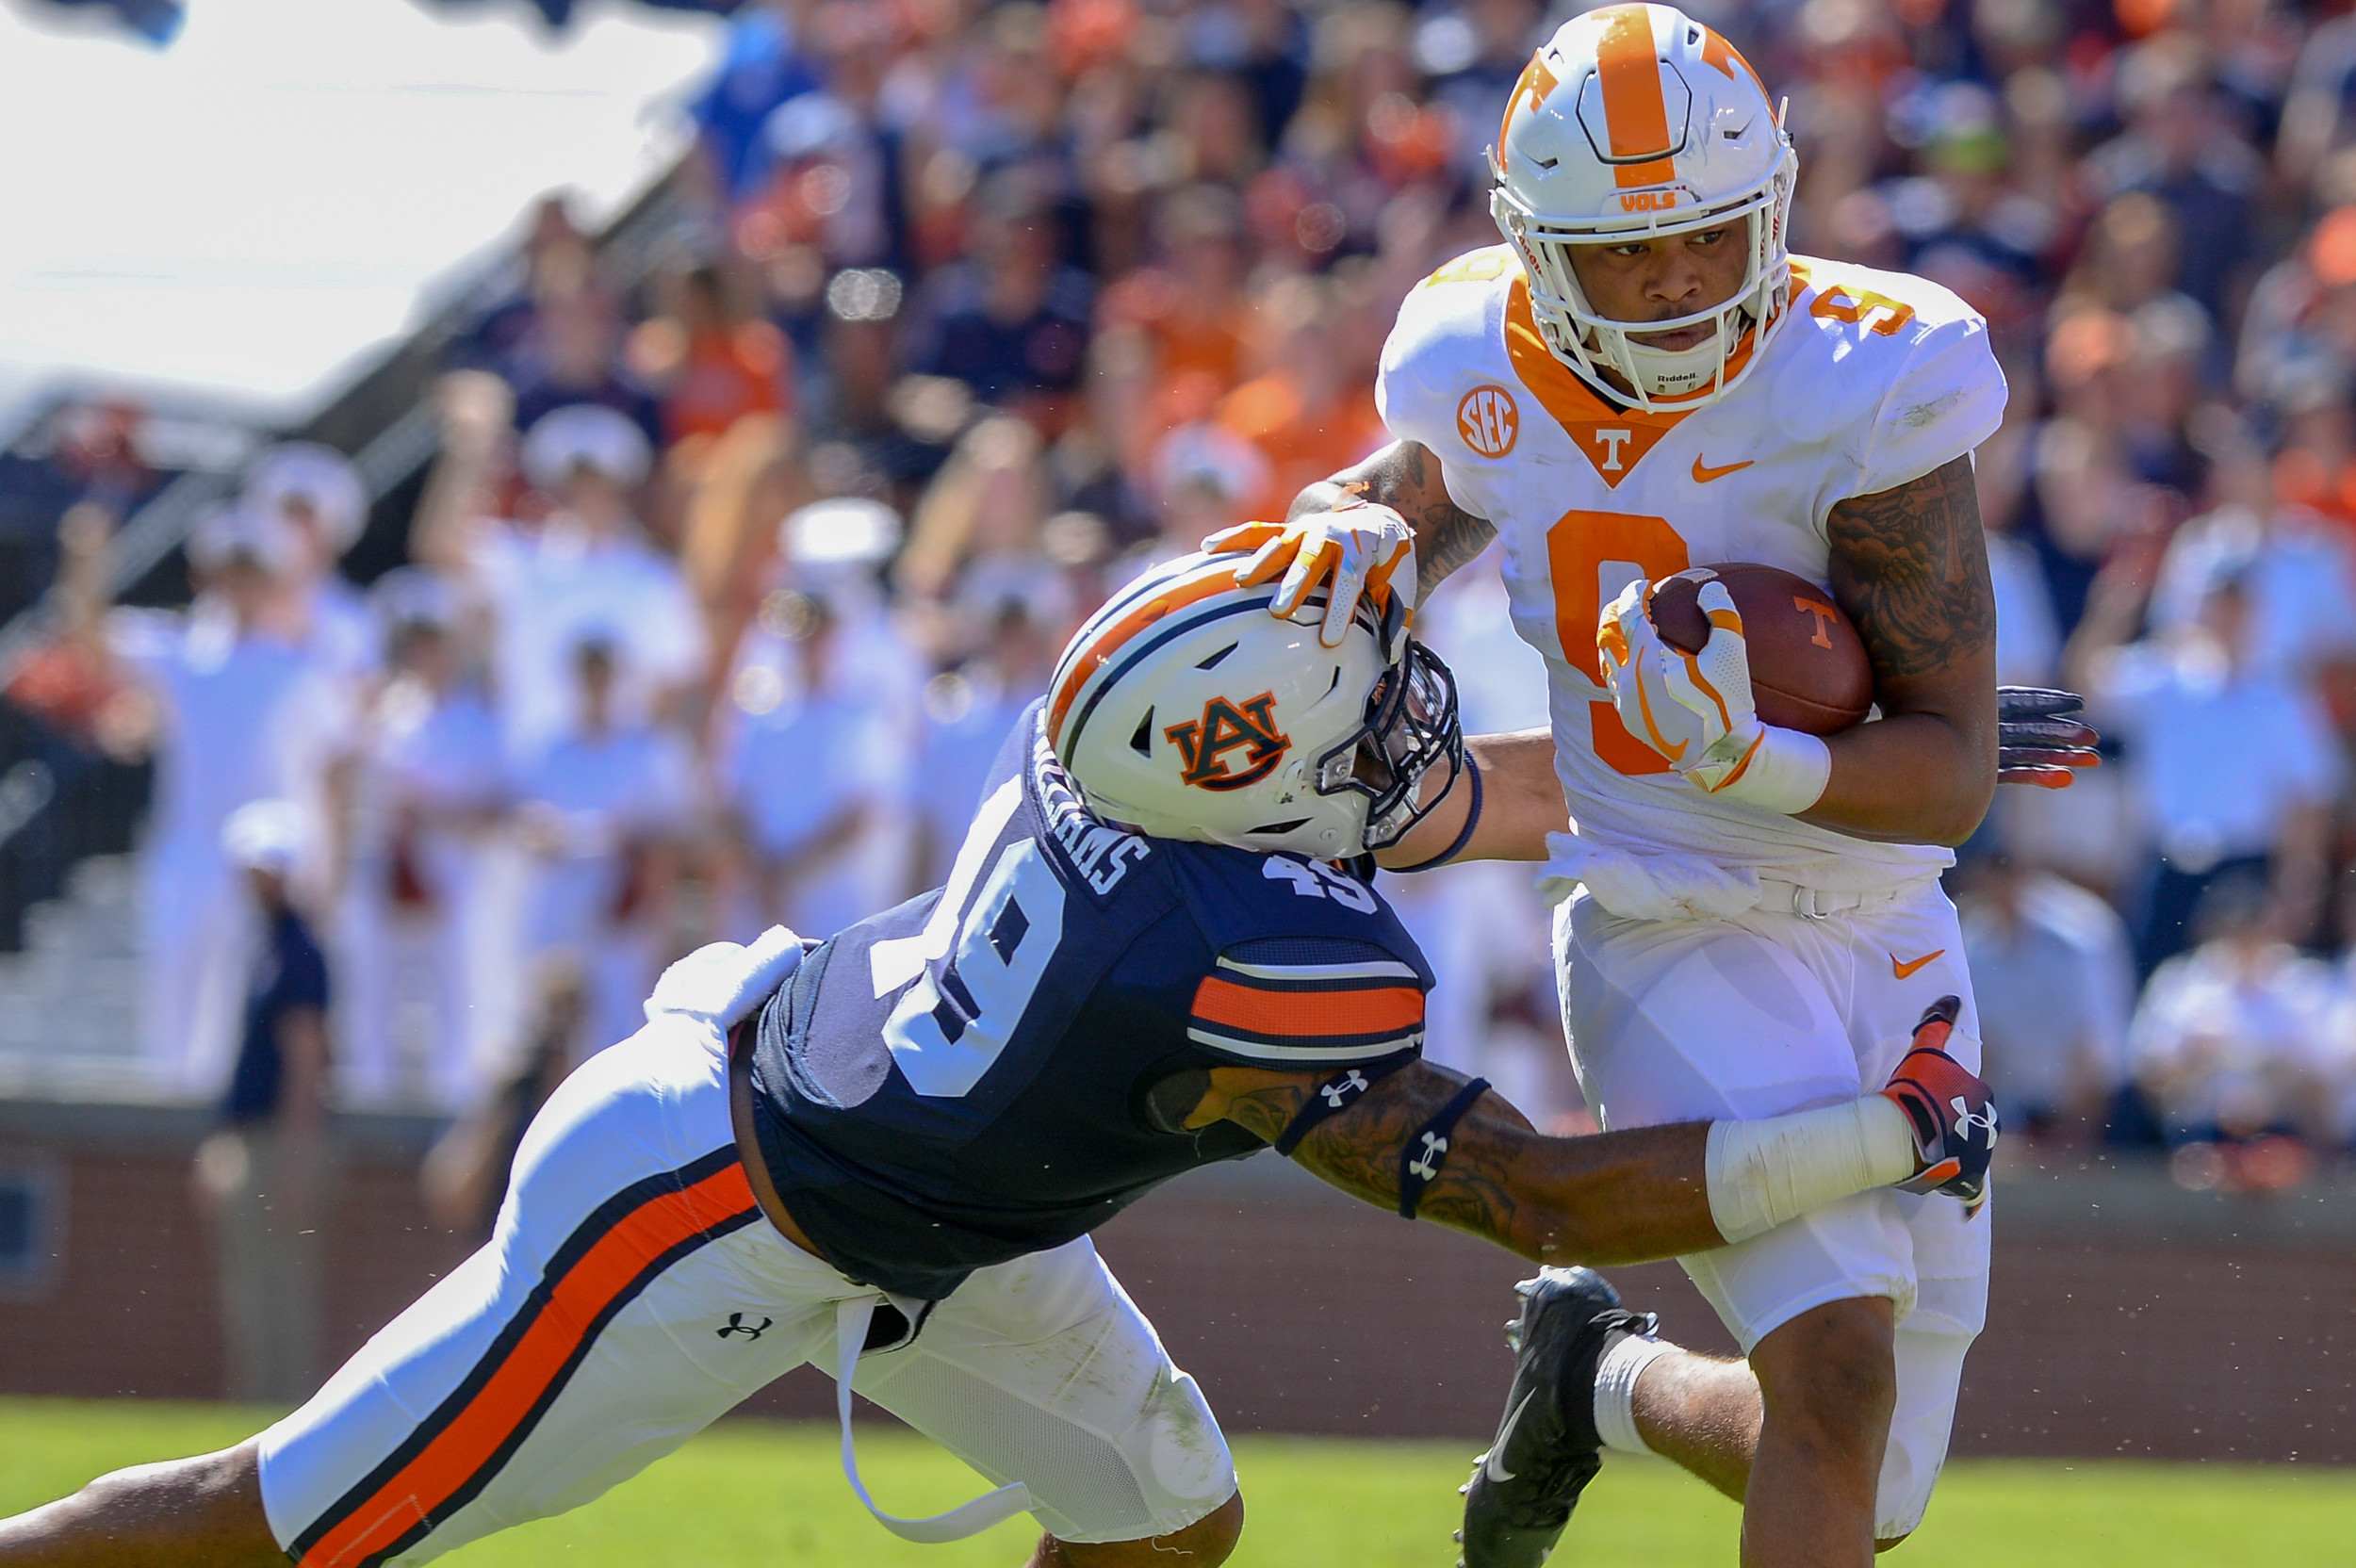 Auburn Tigers linebacker Darrell Williams (49) makes a tackle on Tennessee Volunteers running back Tim Jordan (9) during the first half of Saturday's game, at Jordan-Hare Stadium in Auburn, AL. Daily Mountain Eagle -  Jeff Johnsey